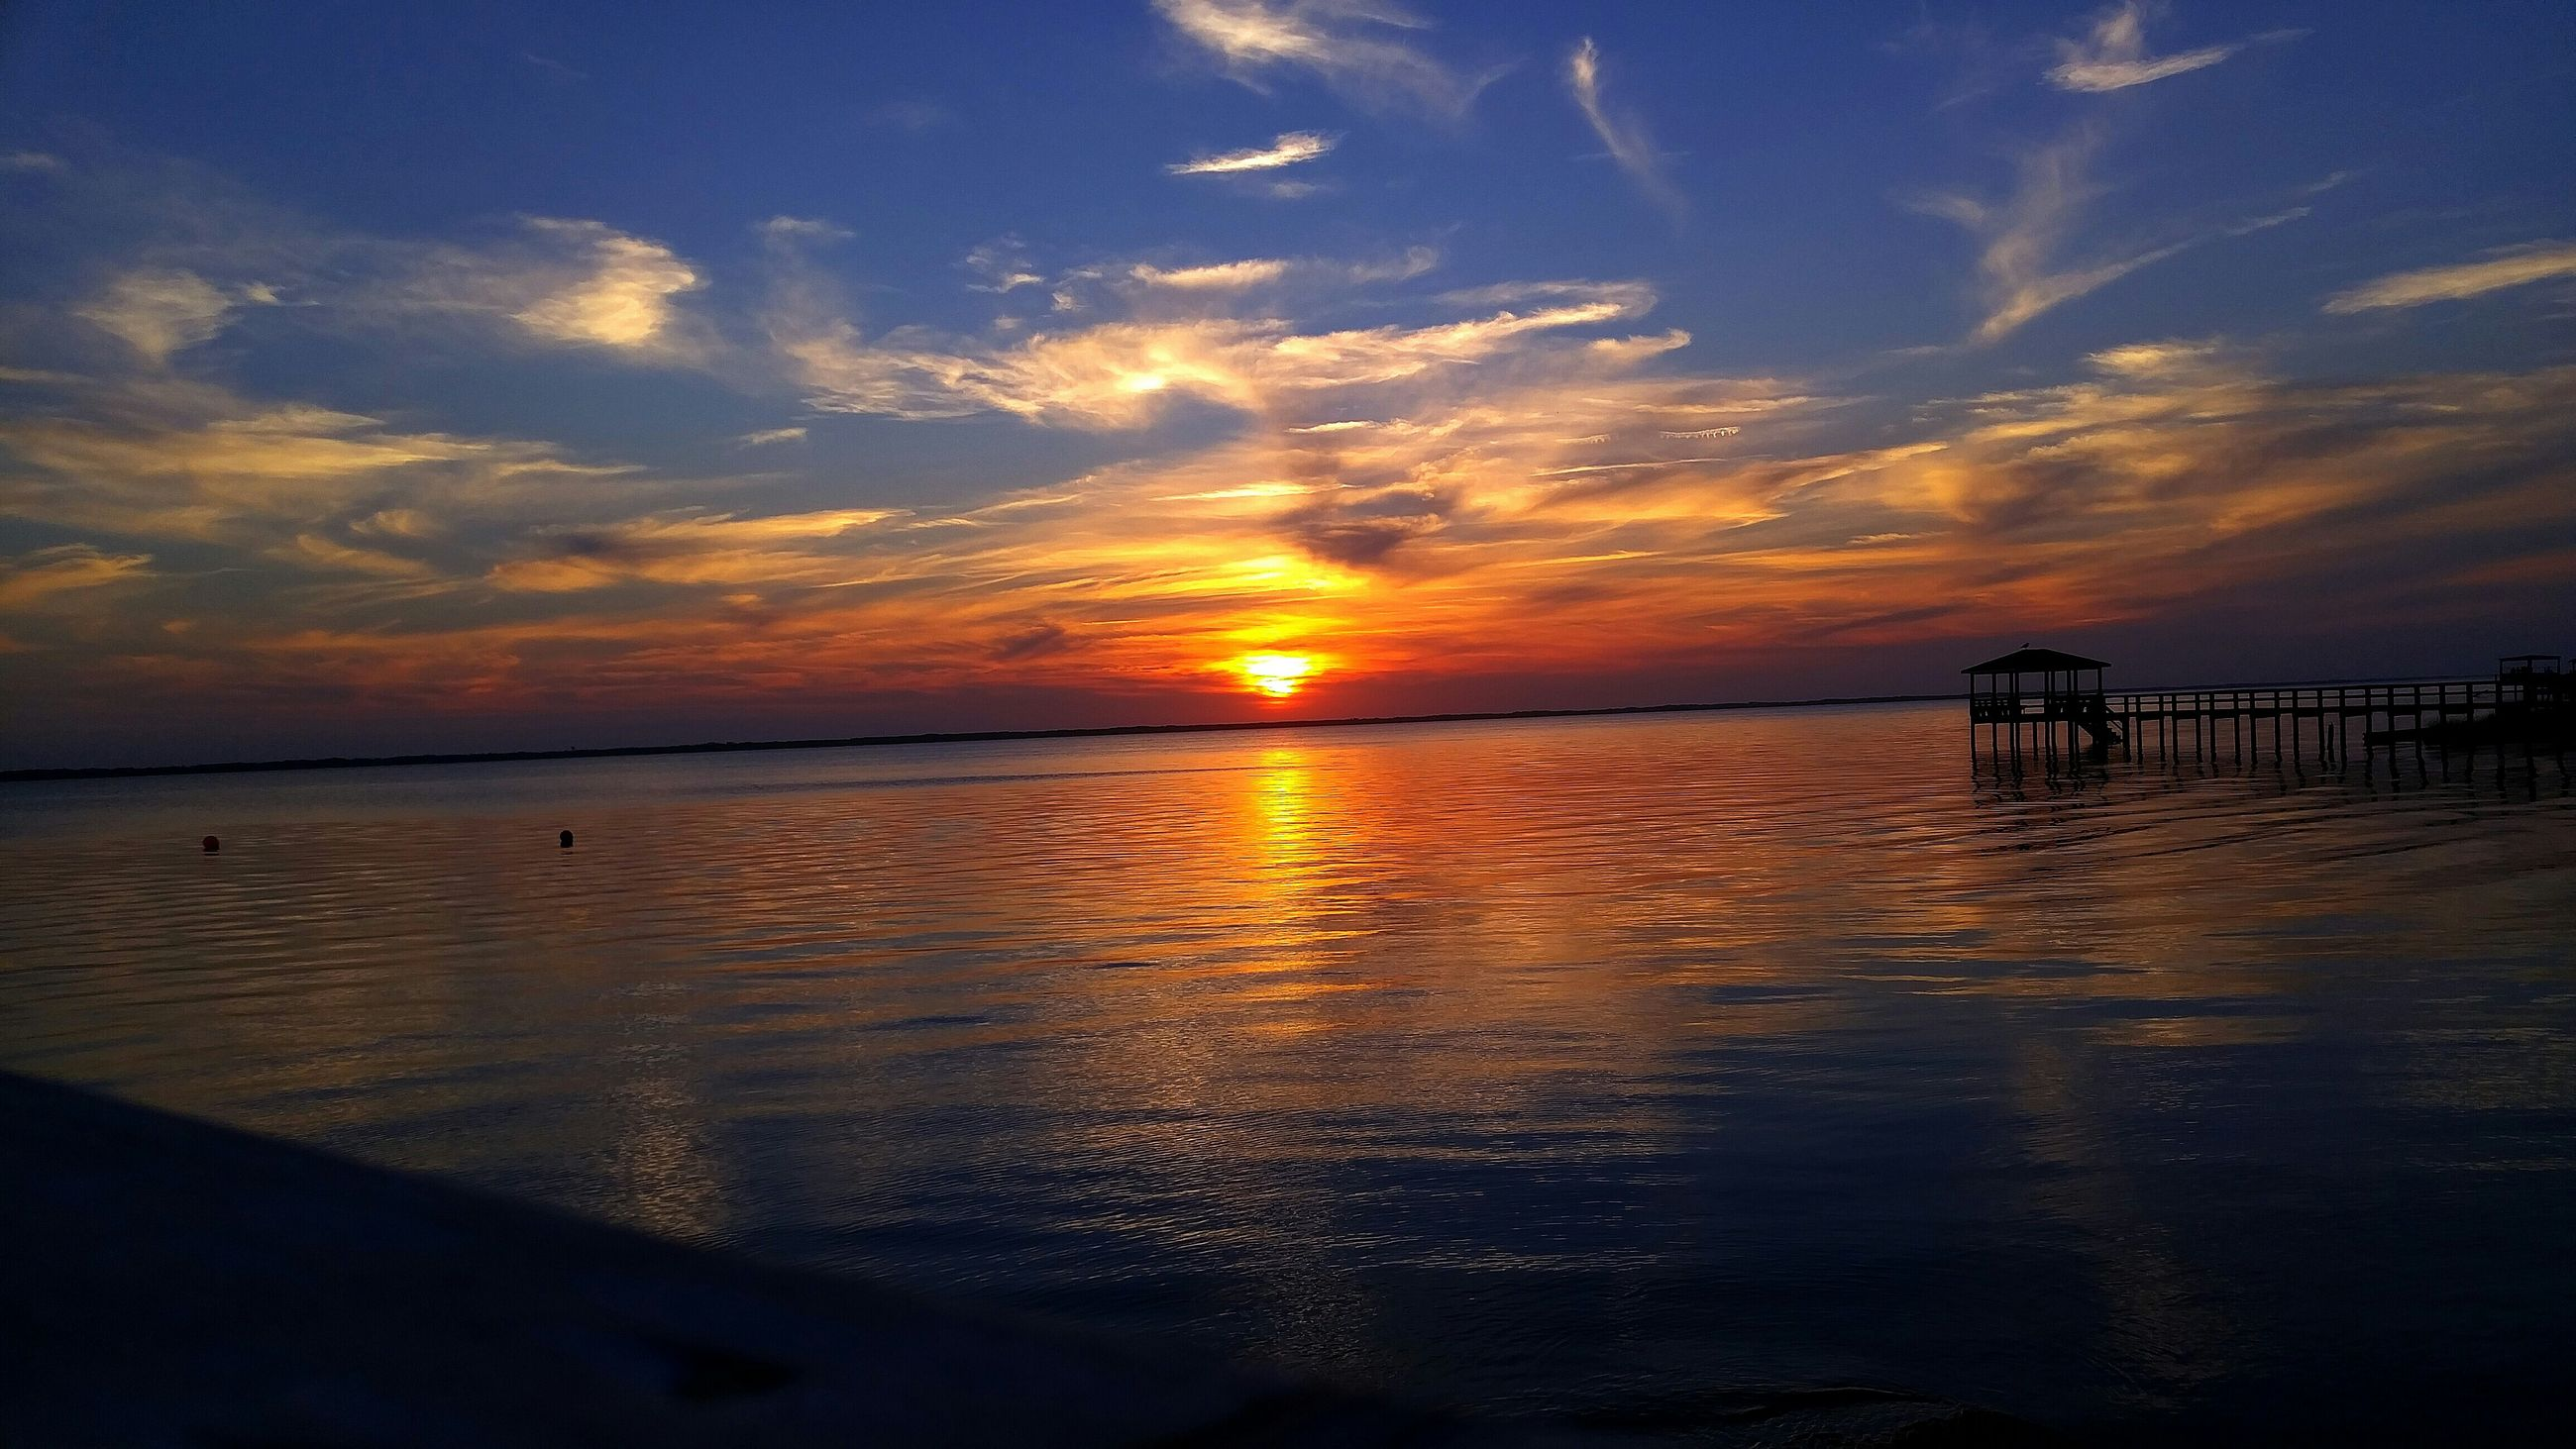 sunset, water, sea, tranquil scene, scenics, tranquility, sky, beauty in nature, horizon over water, sun, reflection, idyllic, orange color, beach, nature, cloud - sky, silhouette, shore, pier, cloud